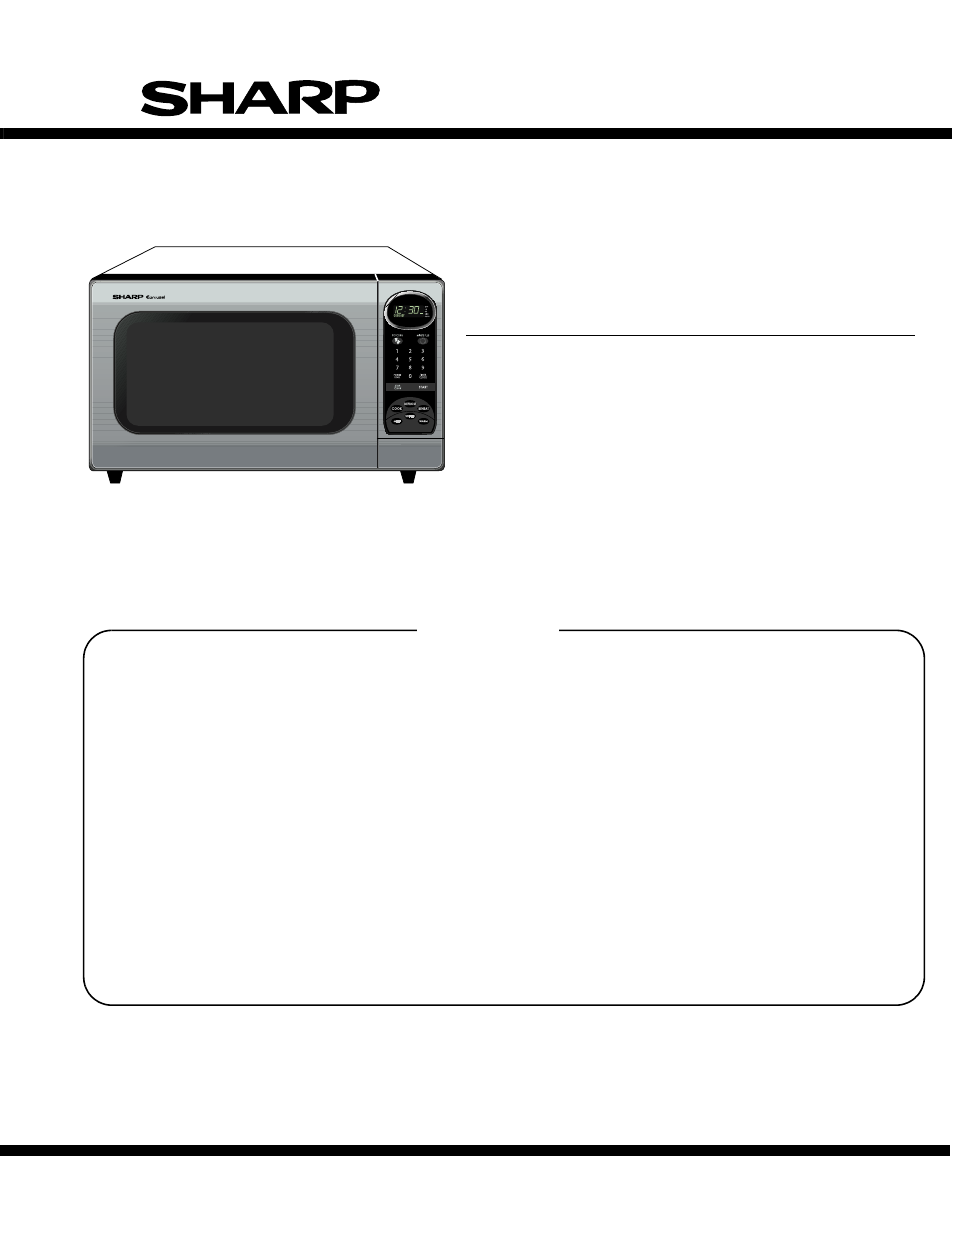 Microwave High Voltage Circuit Diagram Divider Tradeoficcom Sharp Carousel R 305ks User Manual 40 Pages